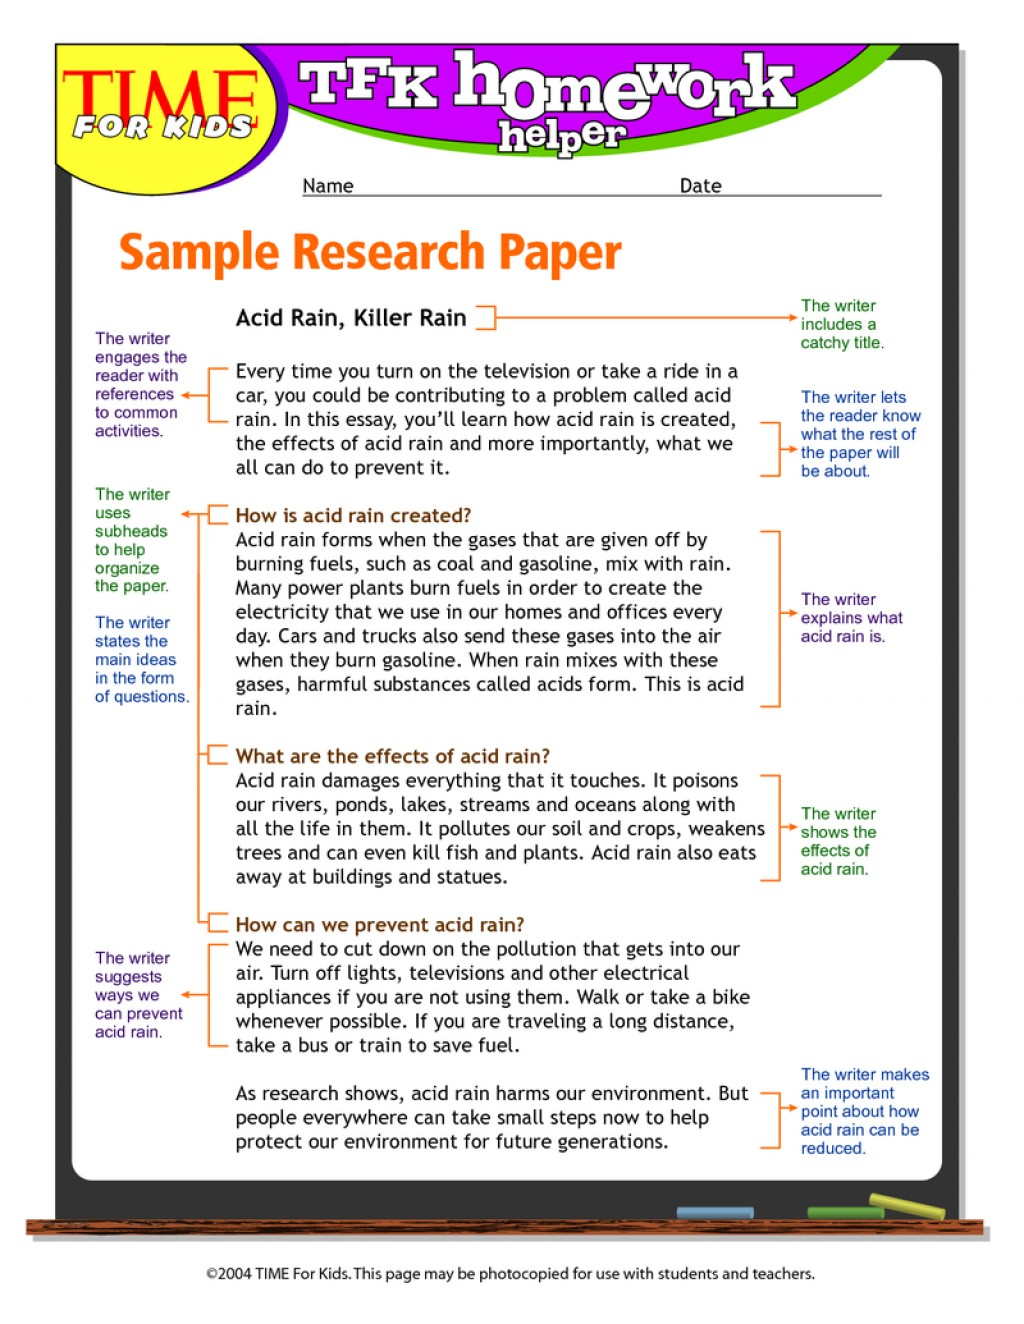 010 Research Paper Creating With Citations And Unusual A References Word Chapter 2 Sources Quizlet Large